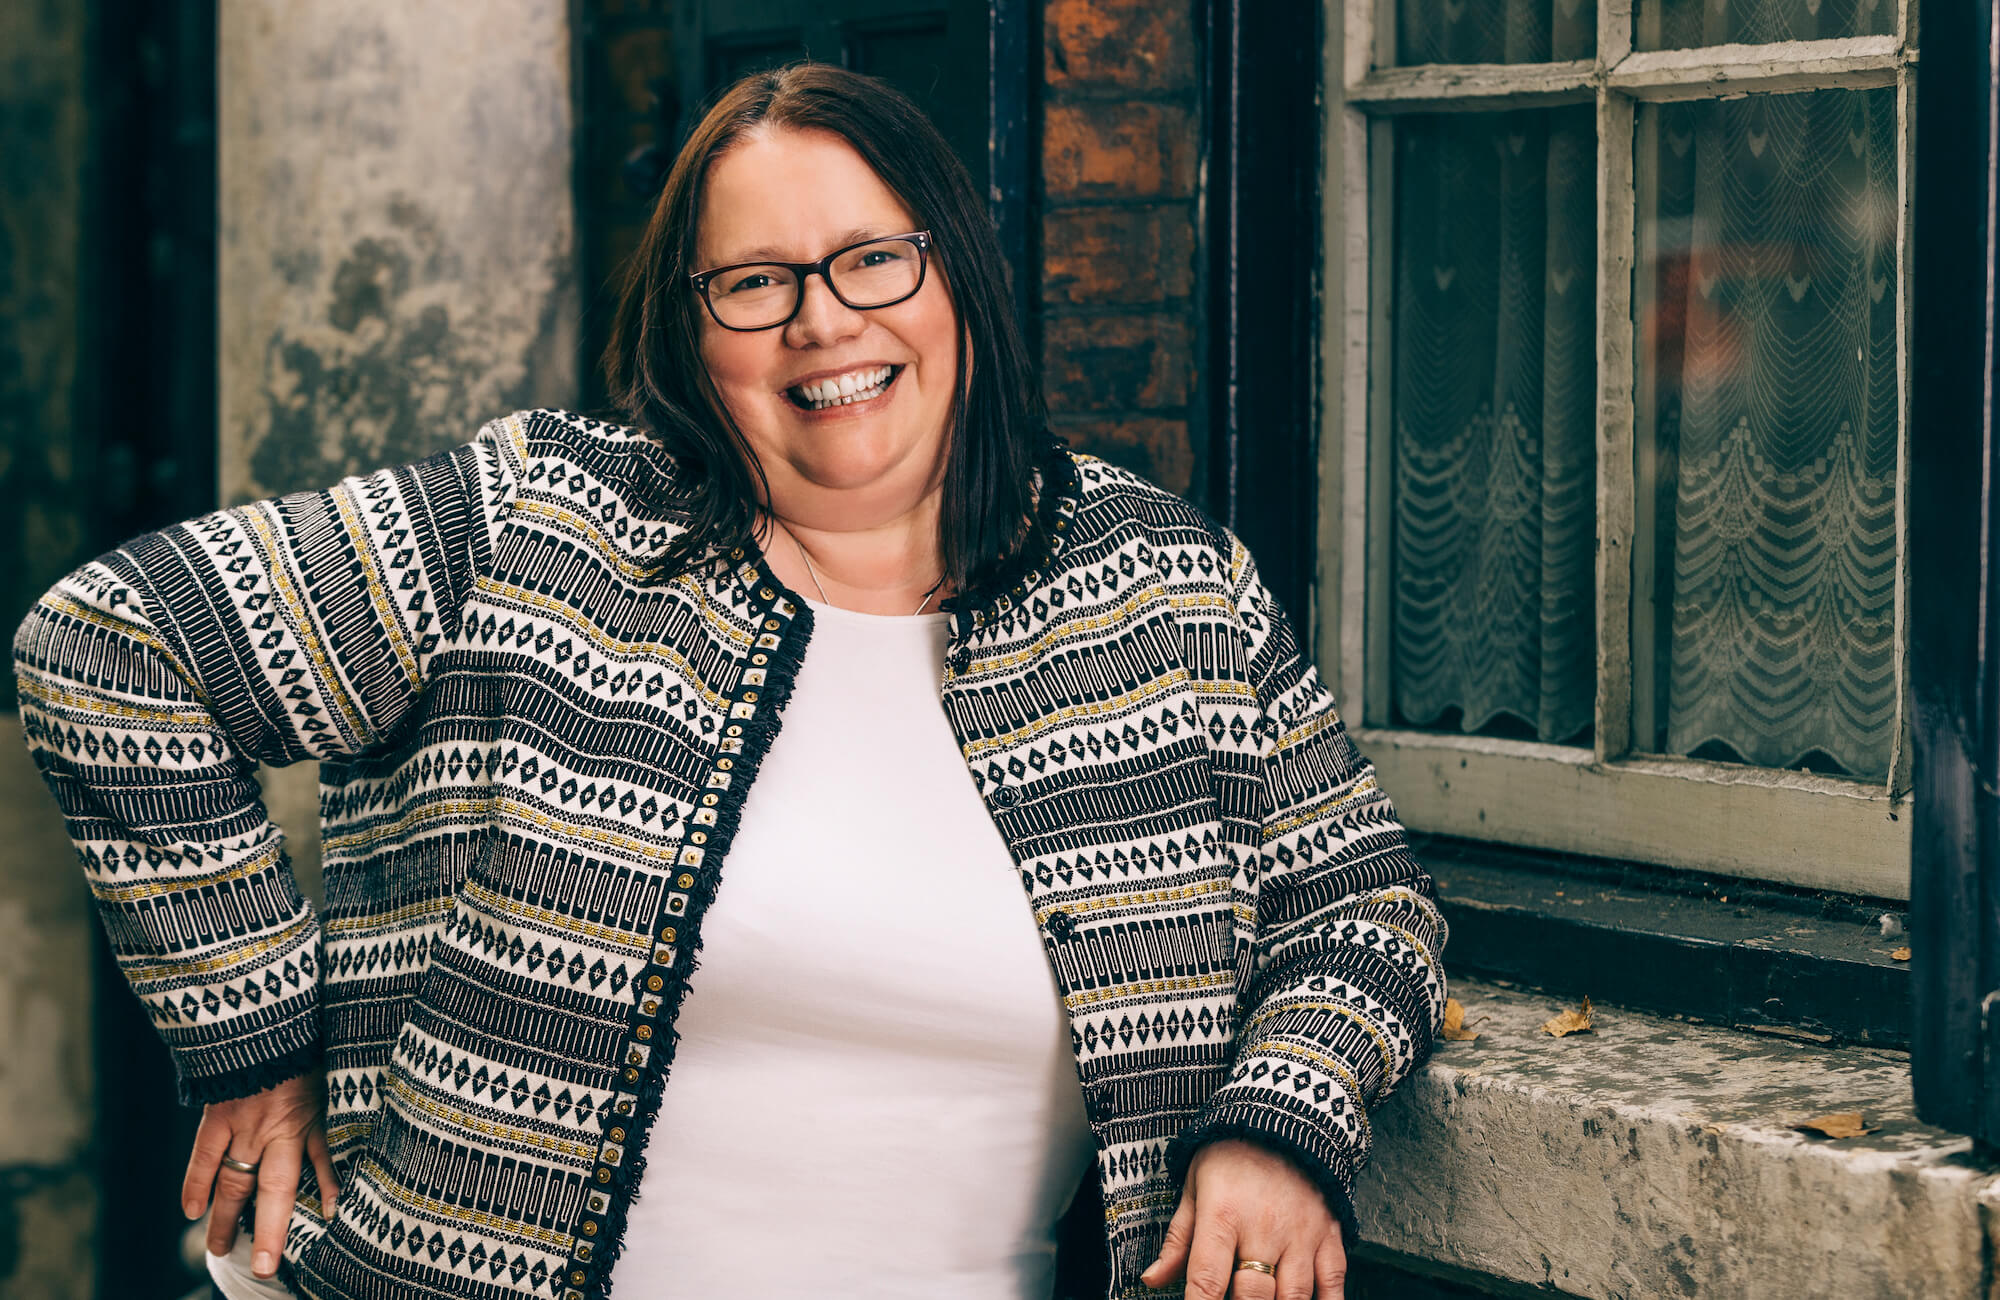 A lady wearing glasses smiling